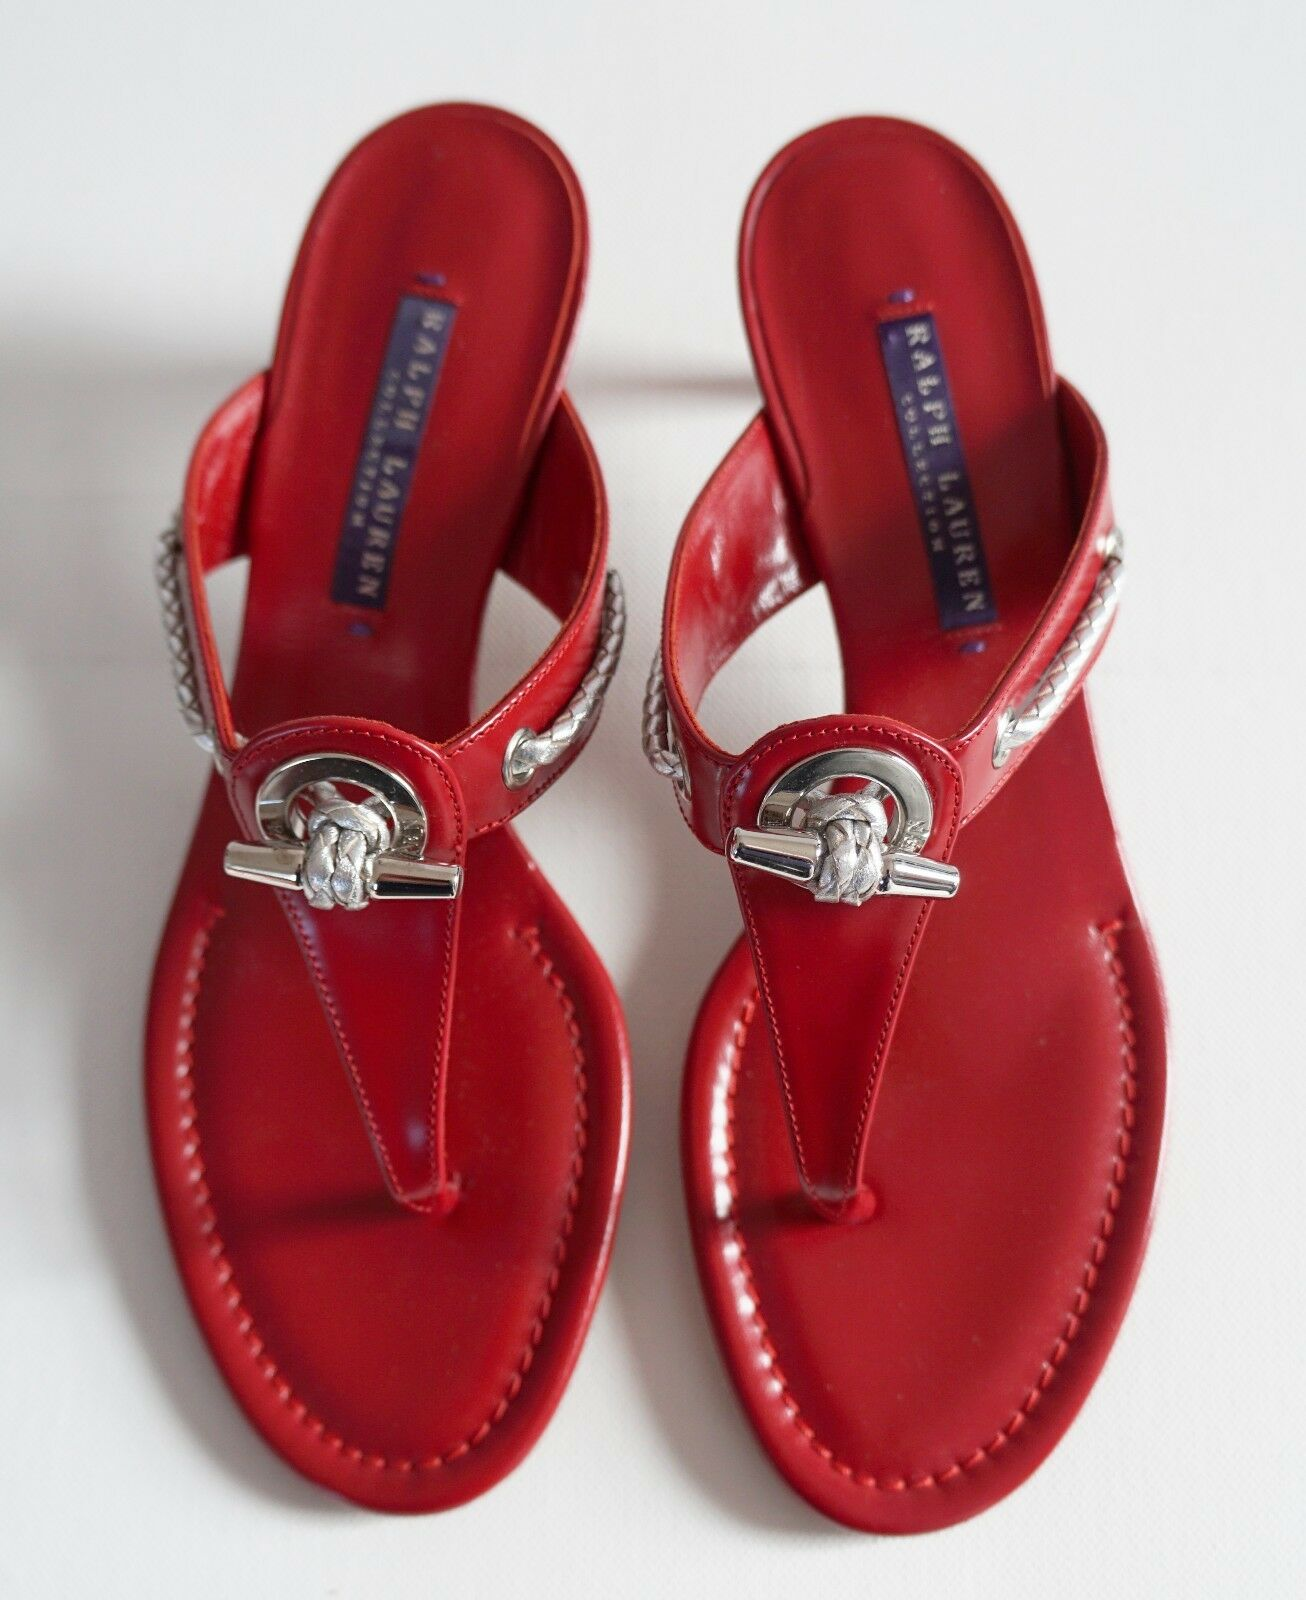 RALPH LAUREN COLLECTION Red Leather Kitten Heel Sandals Heels Slides US-9B EU-39